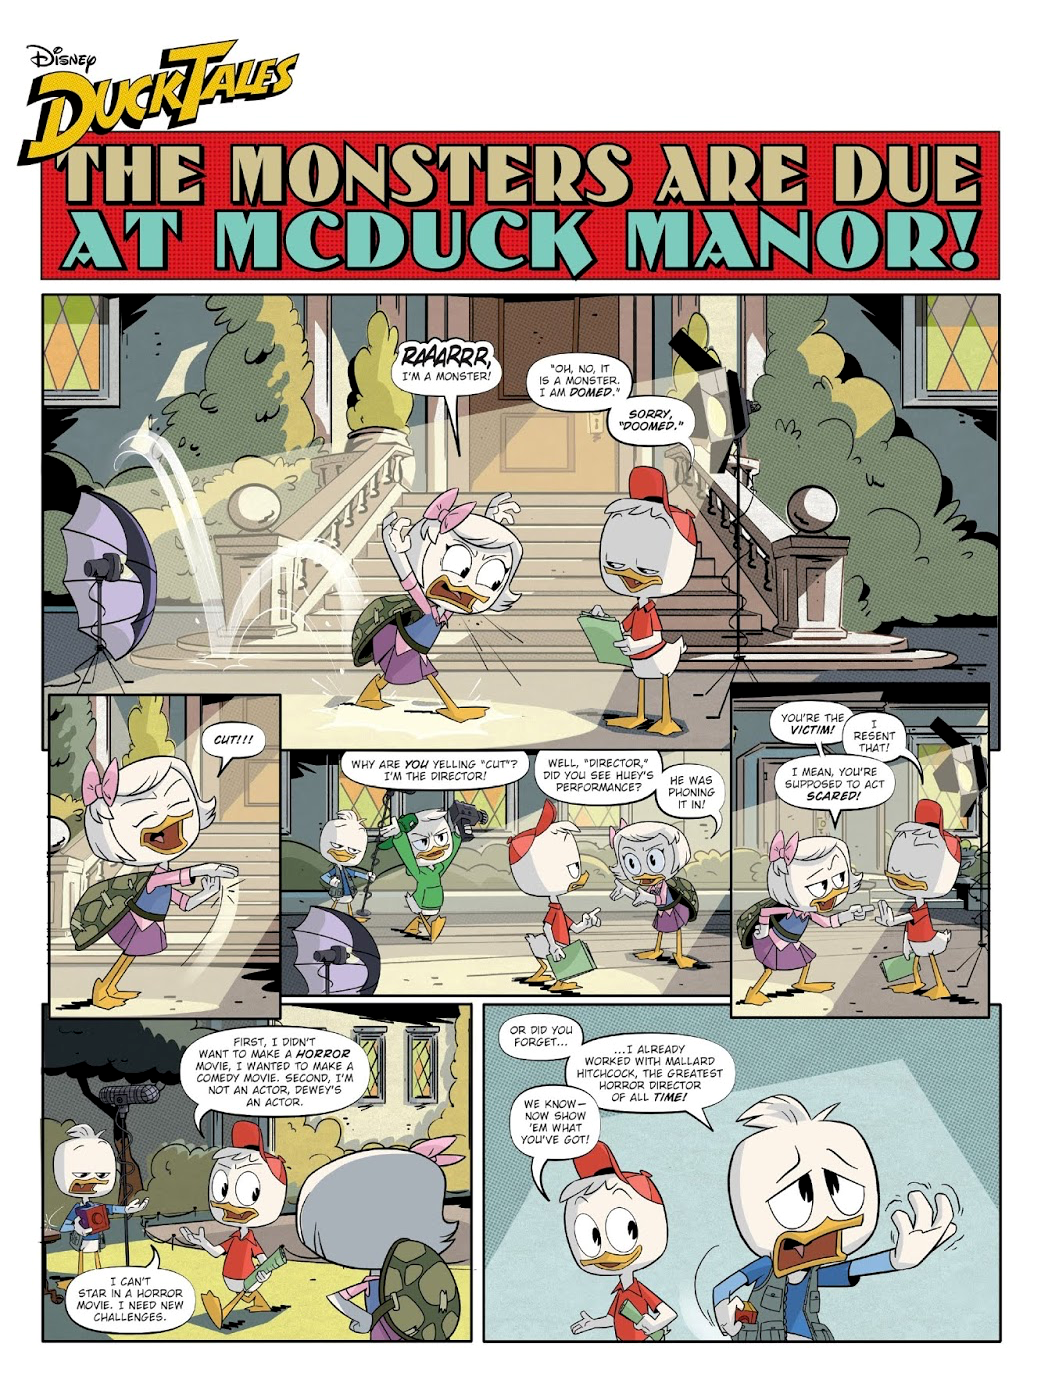 The Monsters Are Due at McDuck Manor!